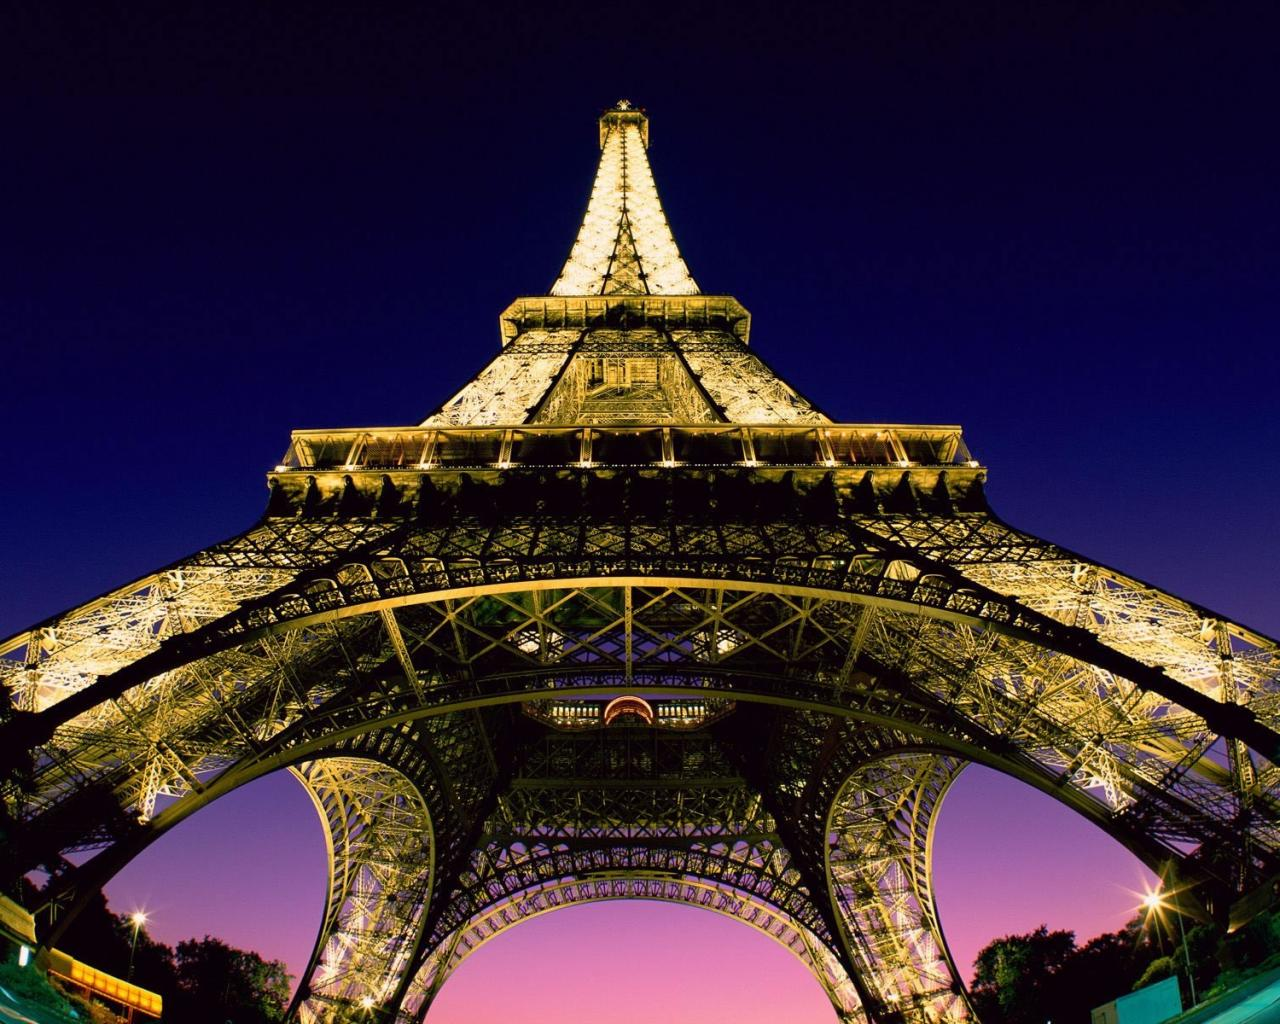 eiffel-tower 1280 x 1024